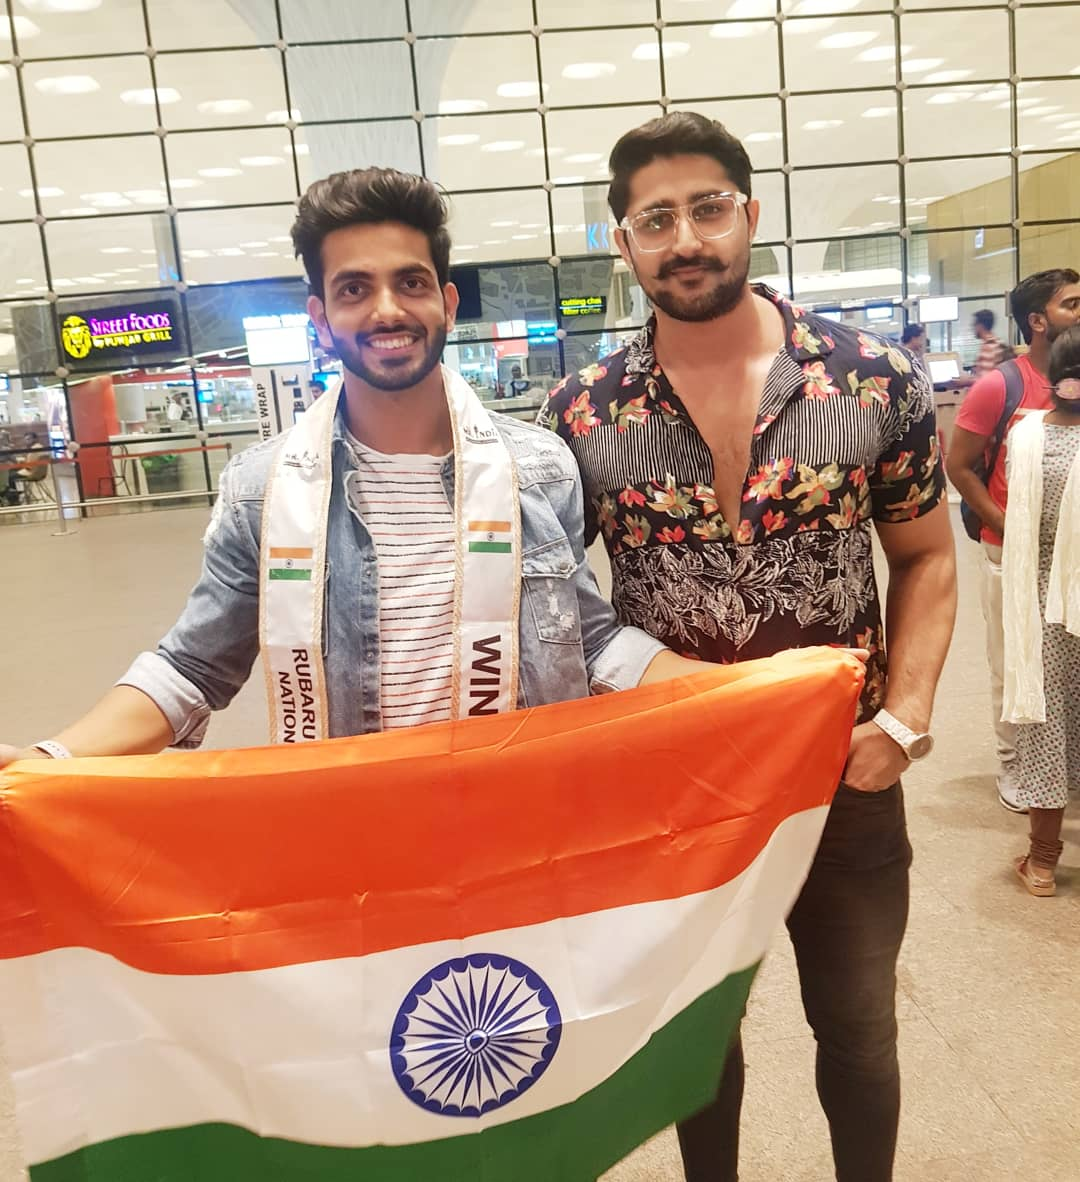 Rubaru Mr India National Universe 2019, Sahil Arora with Rubaru Mr North India 2018, Shubham Chauhan at the airport in Mumbai.